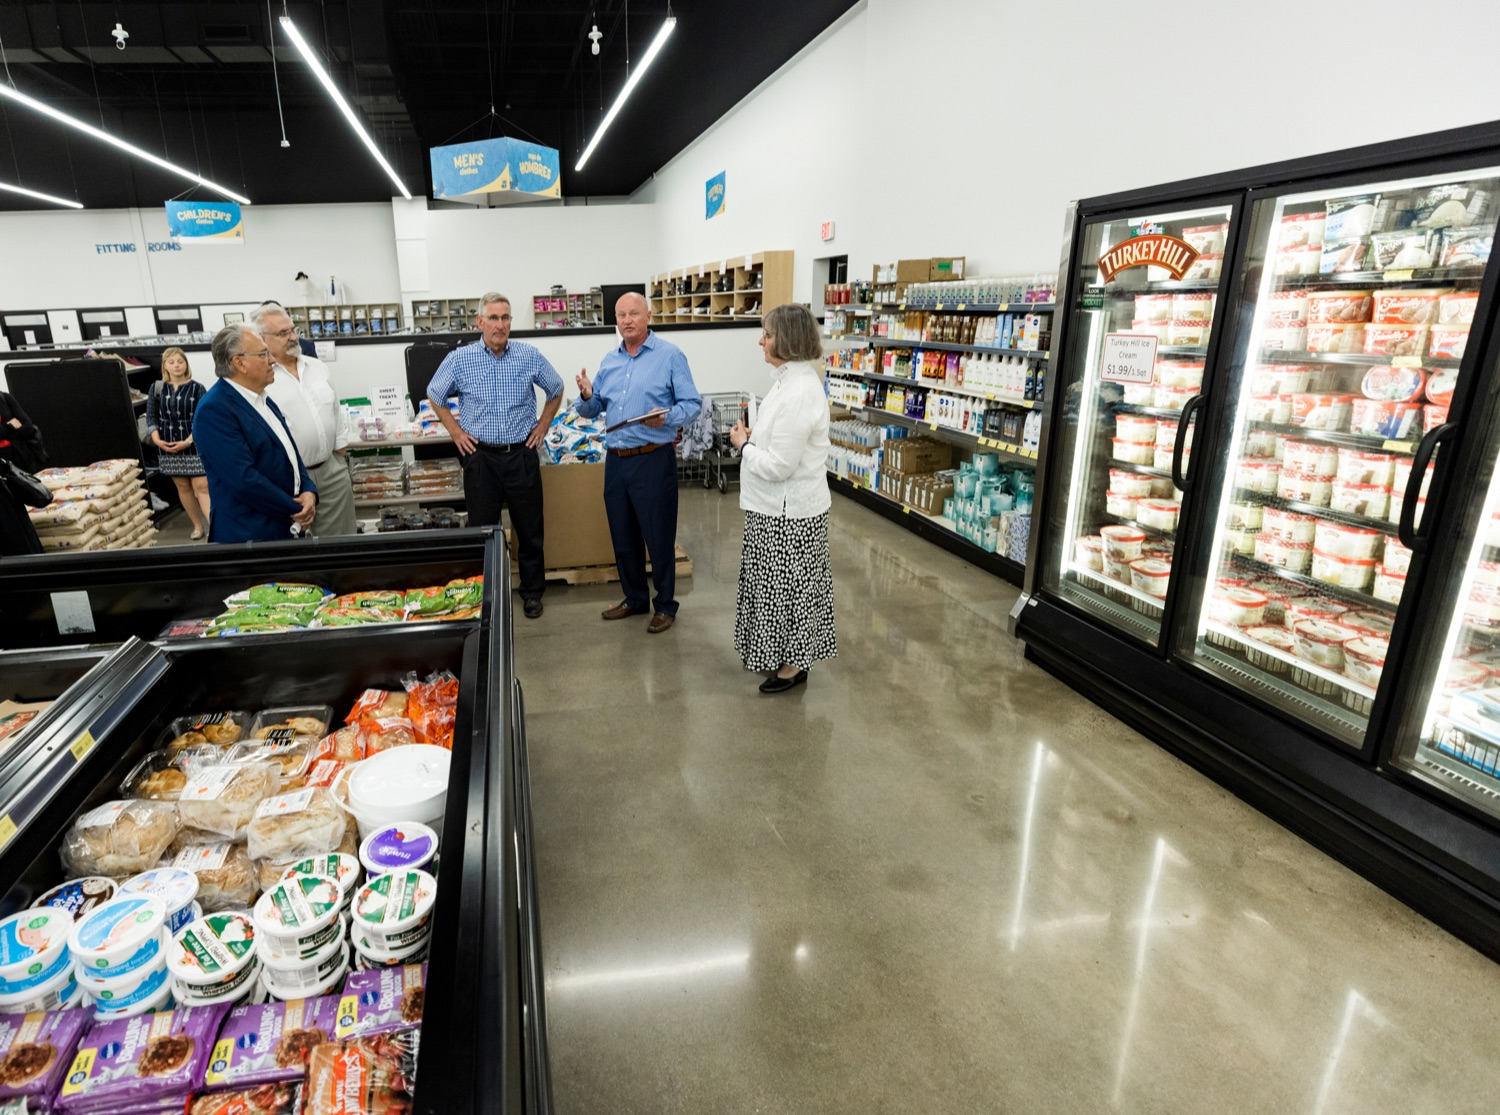 """<a href=""""https://filesource.wostreaming.net/commonwealthofpa/photo/18939_AGRIC_FL_Urban_Farms_NK_019.jpg"""" target=""""_blank"""">⇣Download Photo<br></a>The interior of Treasures Markets is pictured inside Lancaster on Monday, July 19, 2021. The Treasures of Hope Foundation and Treasures Markets were formed in February 2018 to bring back groceries to Lancaster City. Treasures of Hope is a 501C3 and Treasures Markets is an LLC social enterprise under Treasures of Hope. All profits from Treasures Markets go to Treasures of Hope which distributes them to other 501C3 organizations that feed the hungry and homeless."""